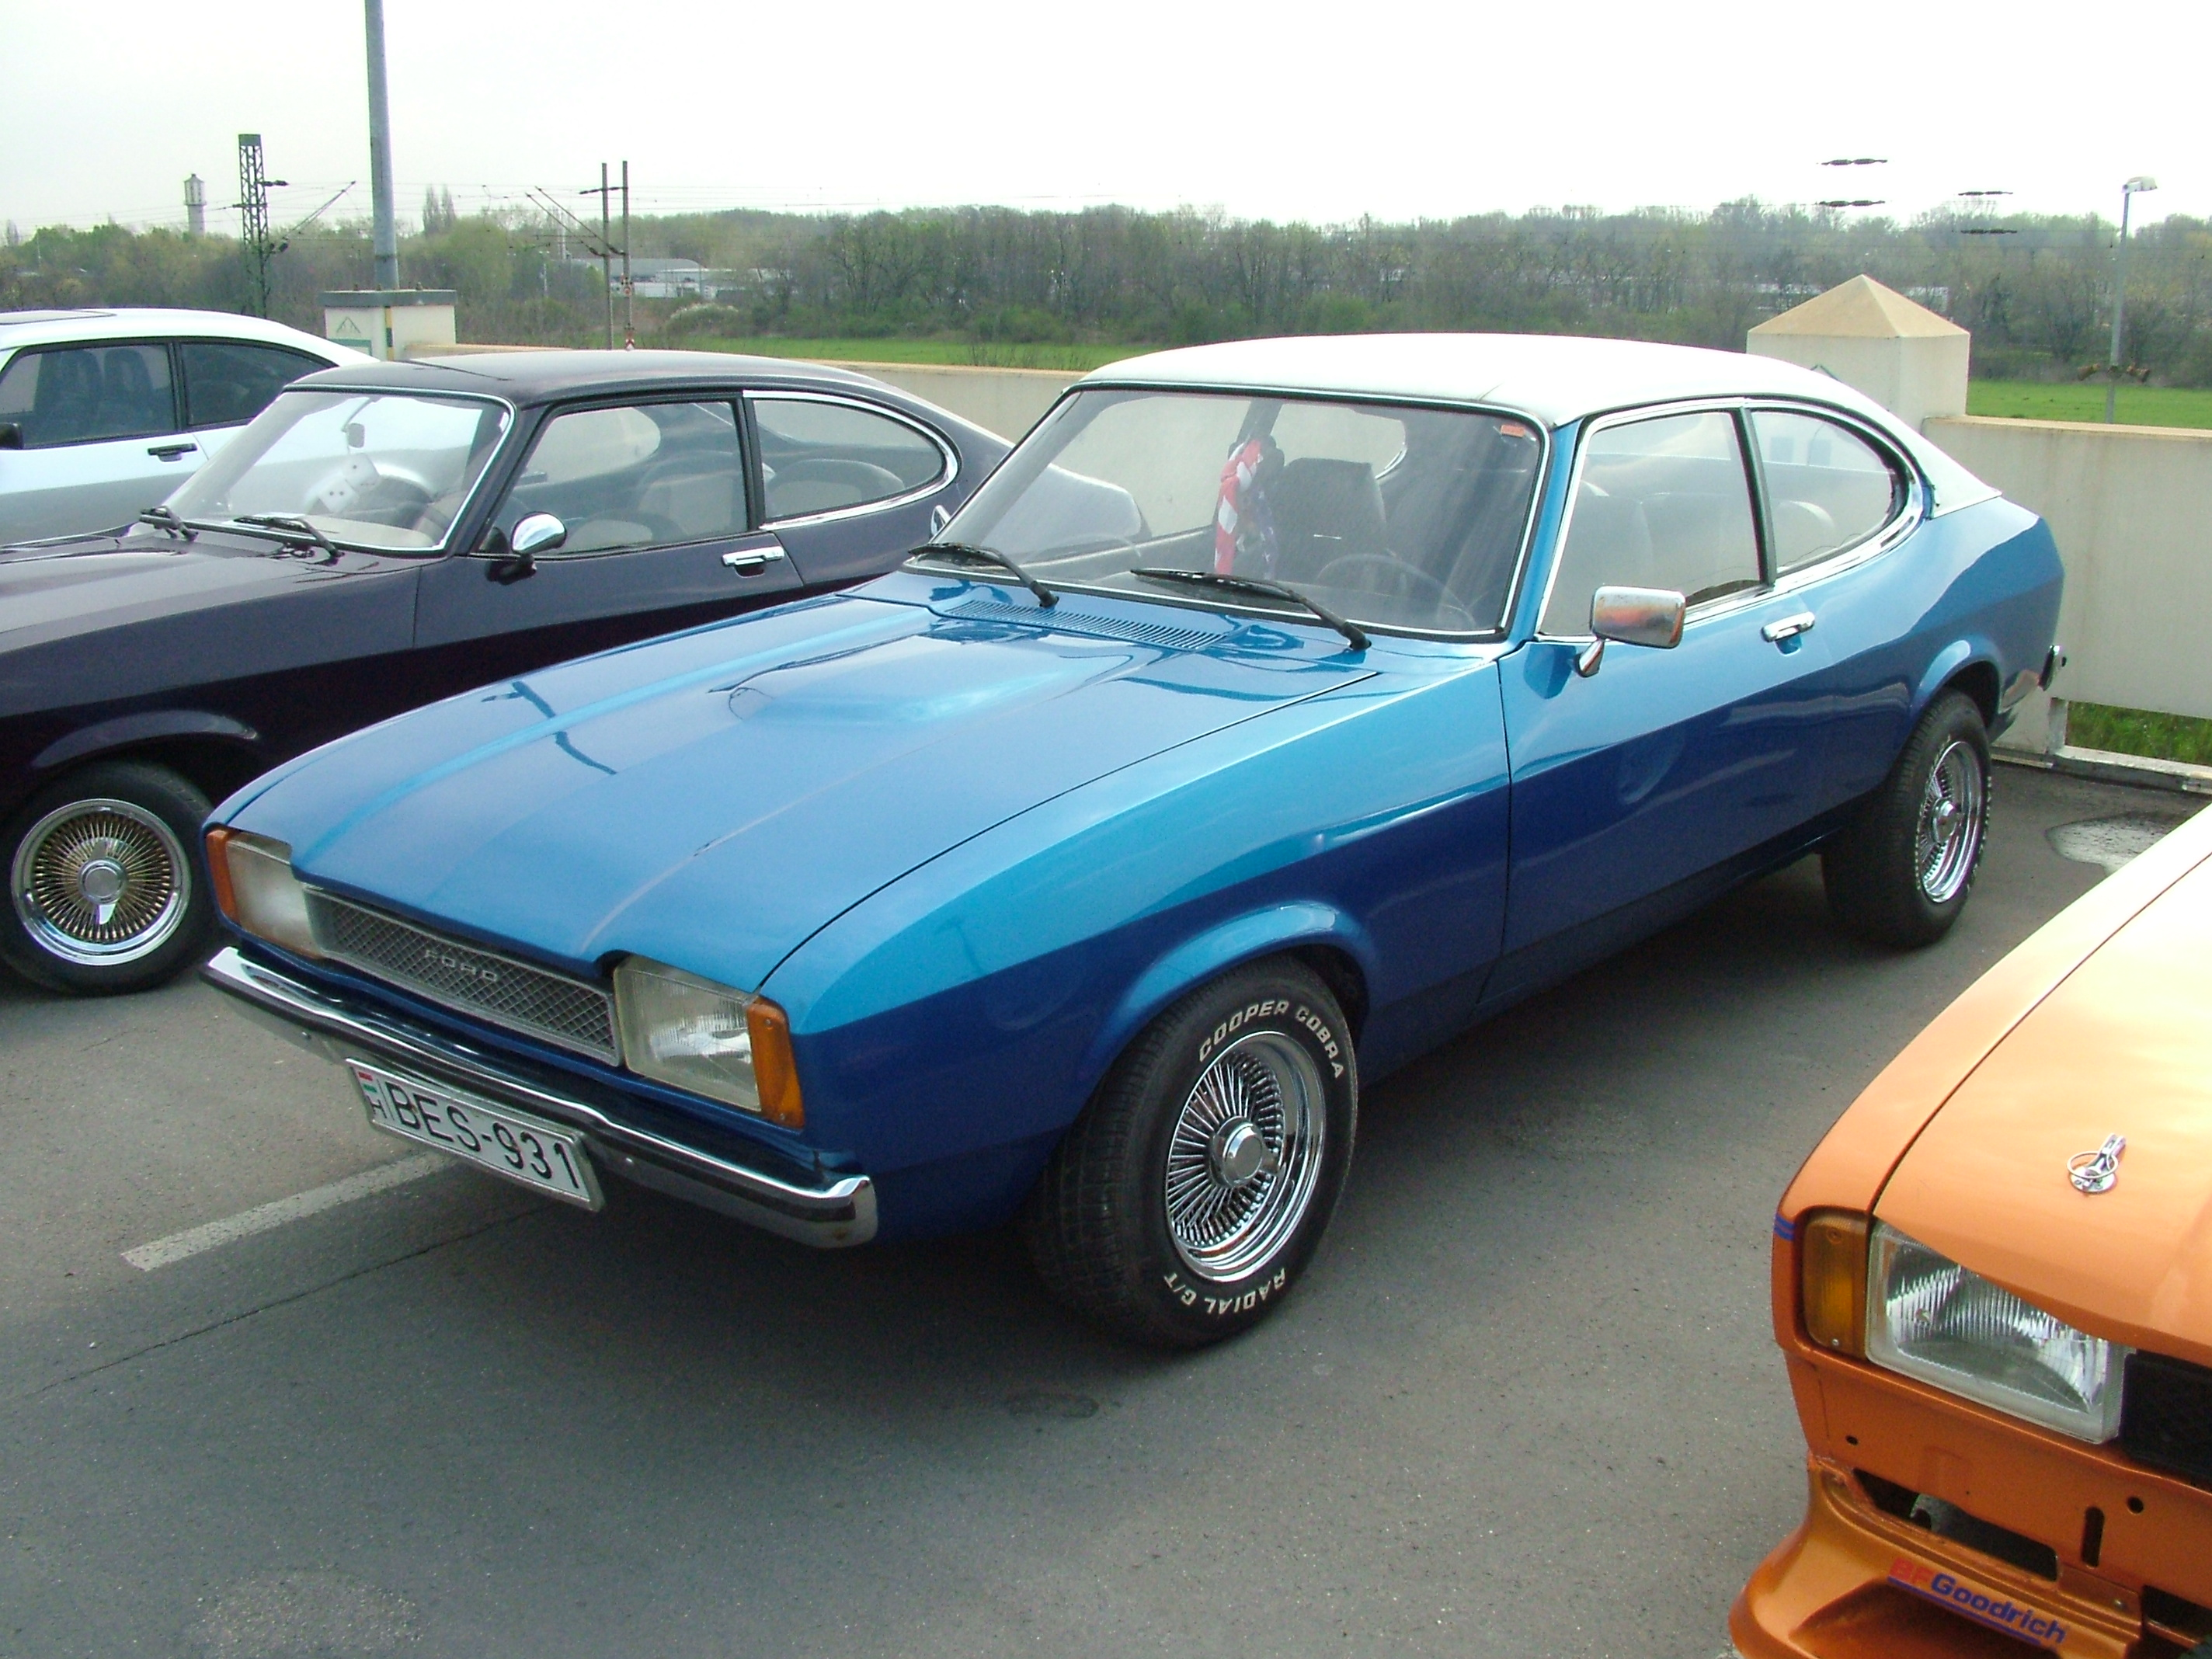 file ford capri mk2 flickr granada wikimedia commons. Black Bedroom Furniture Sets. Home Design Ideas